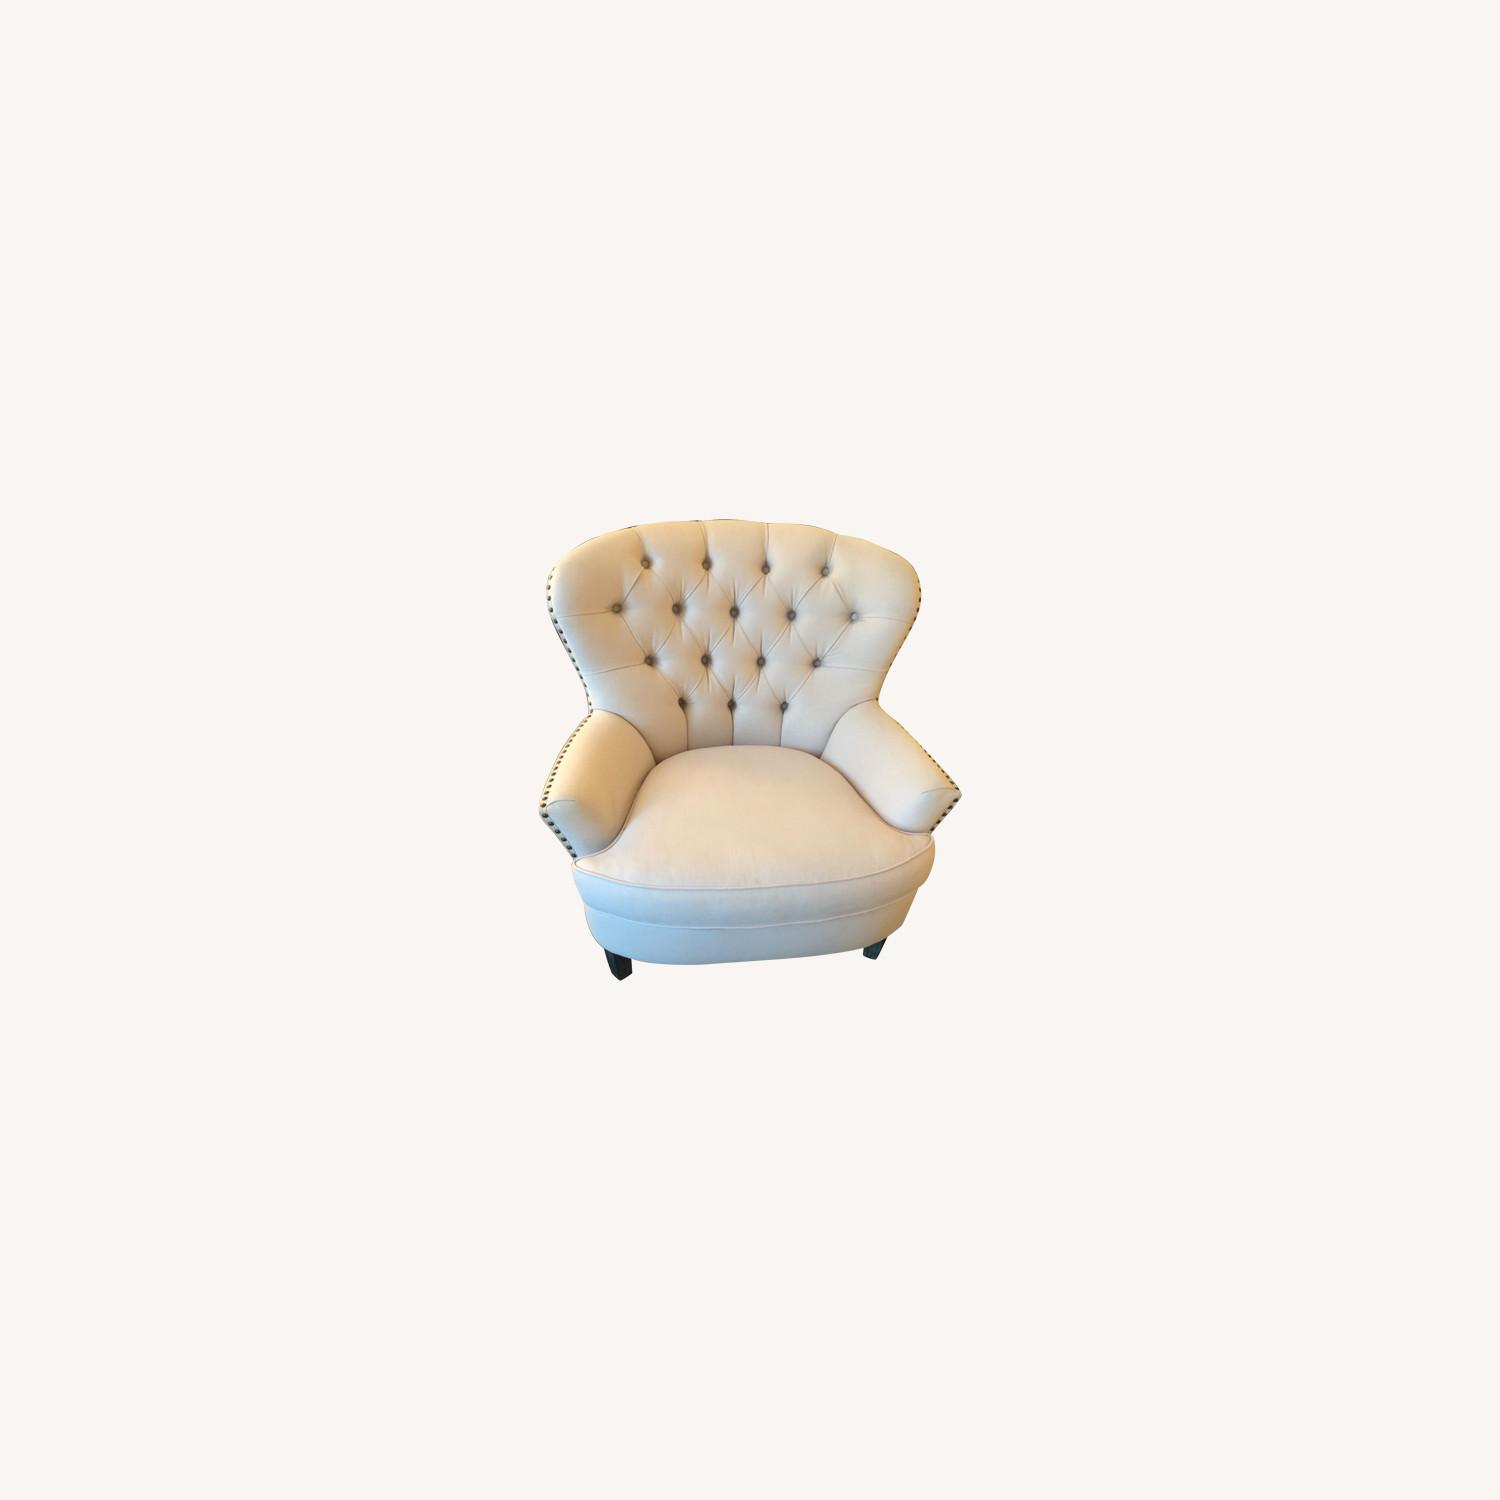 Pottery Barn Cardiff Chair Cotton Blush - image-0